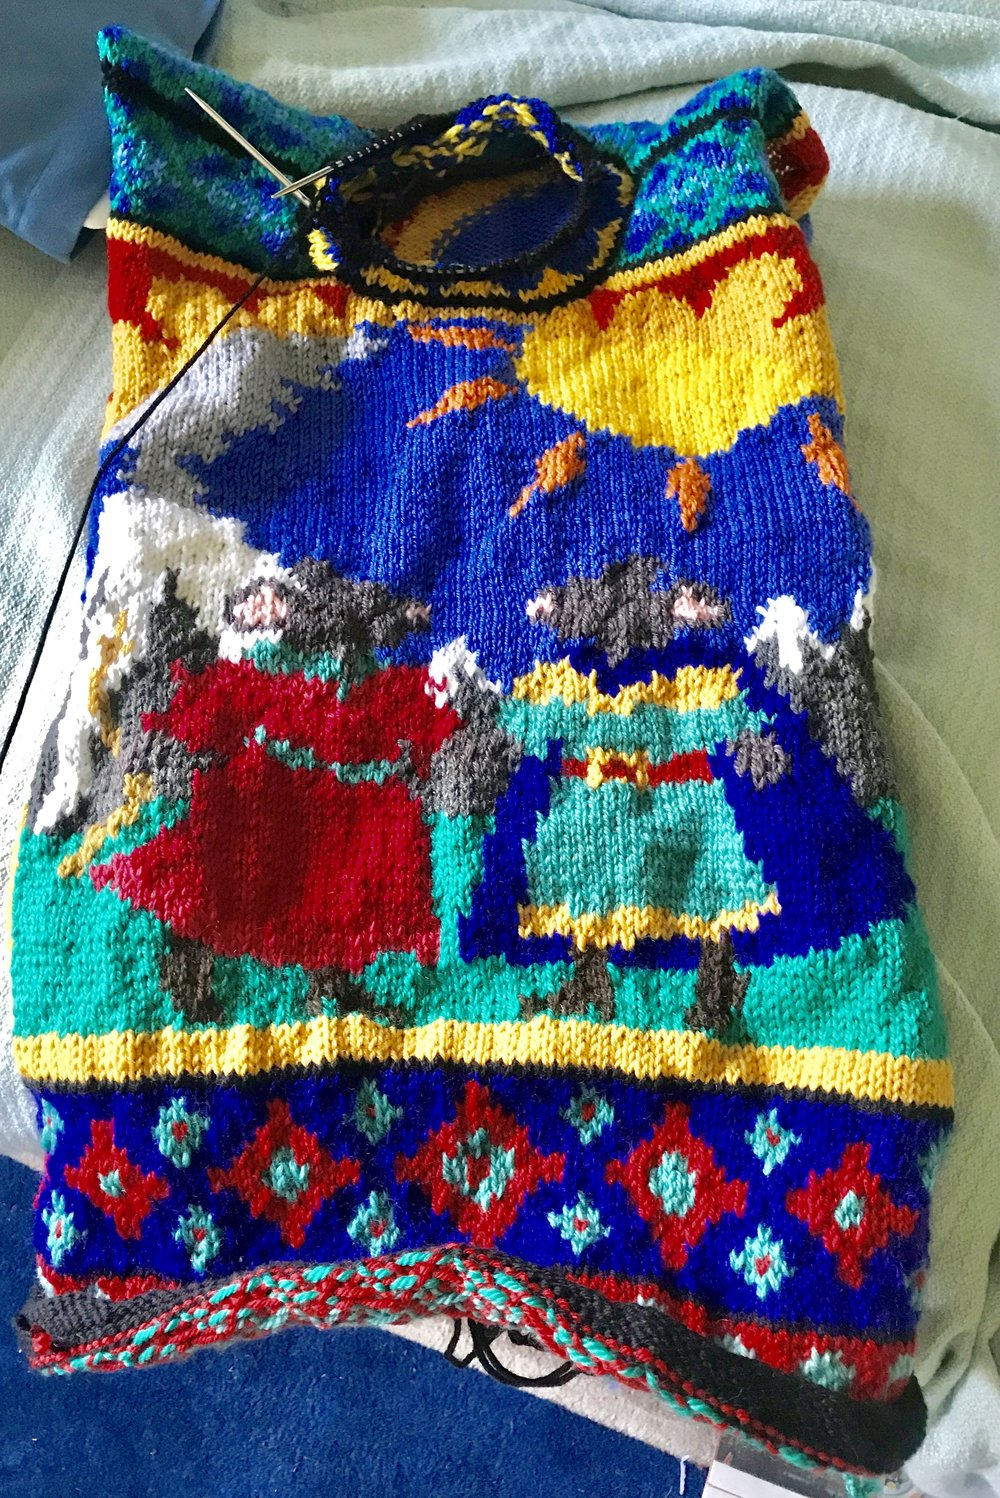 Redwall sweater in progress.